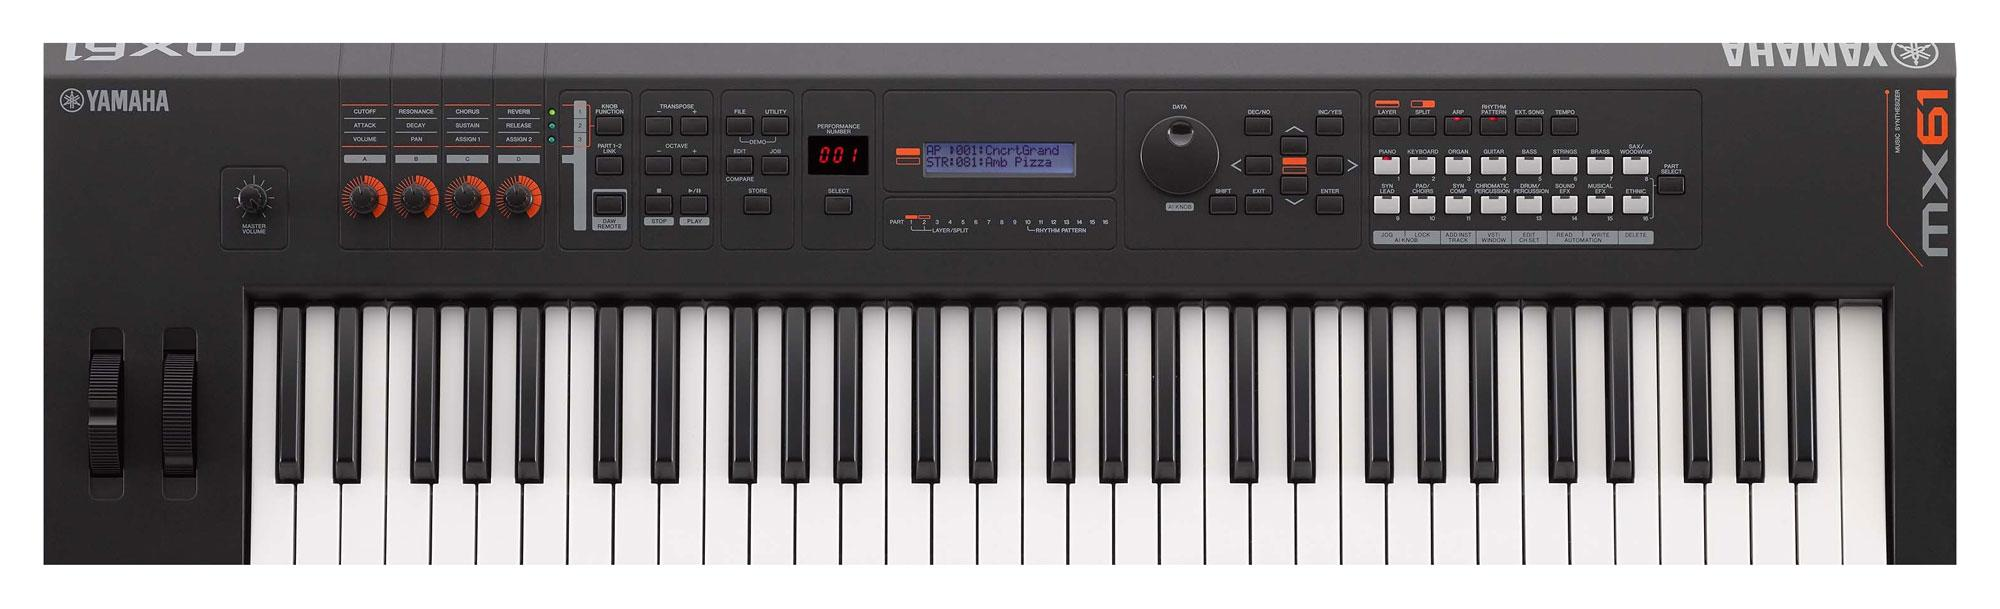 yamaha mx61 v2 music synthesizer schwarz